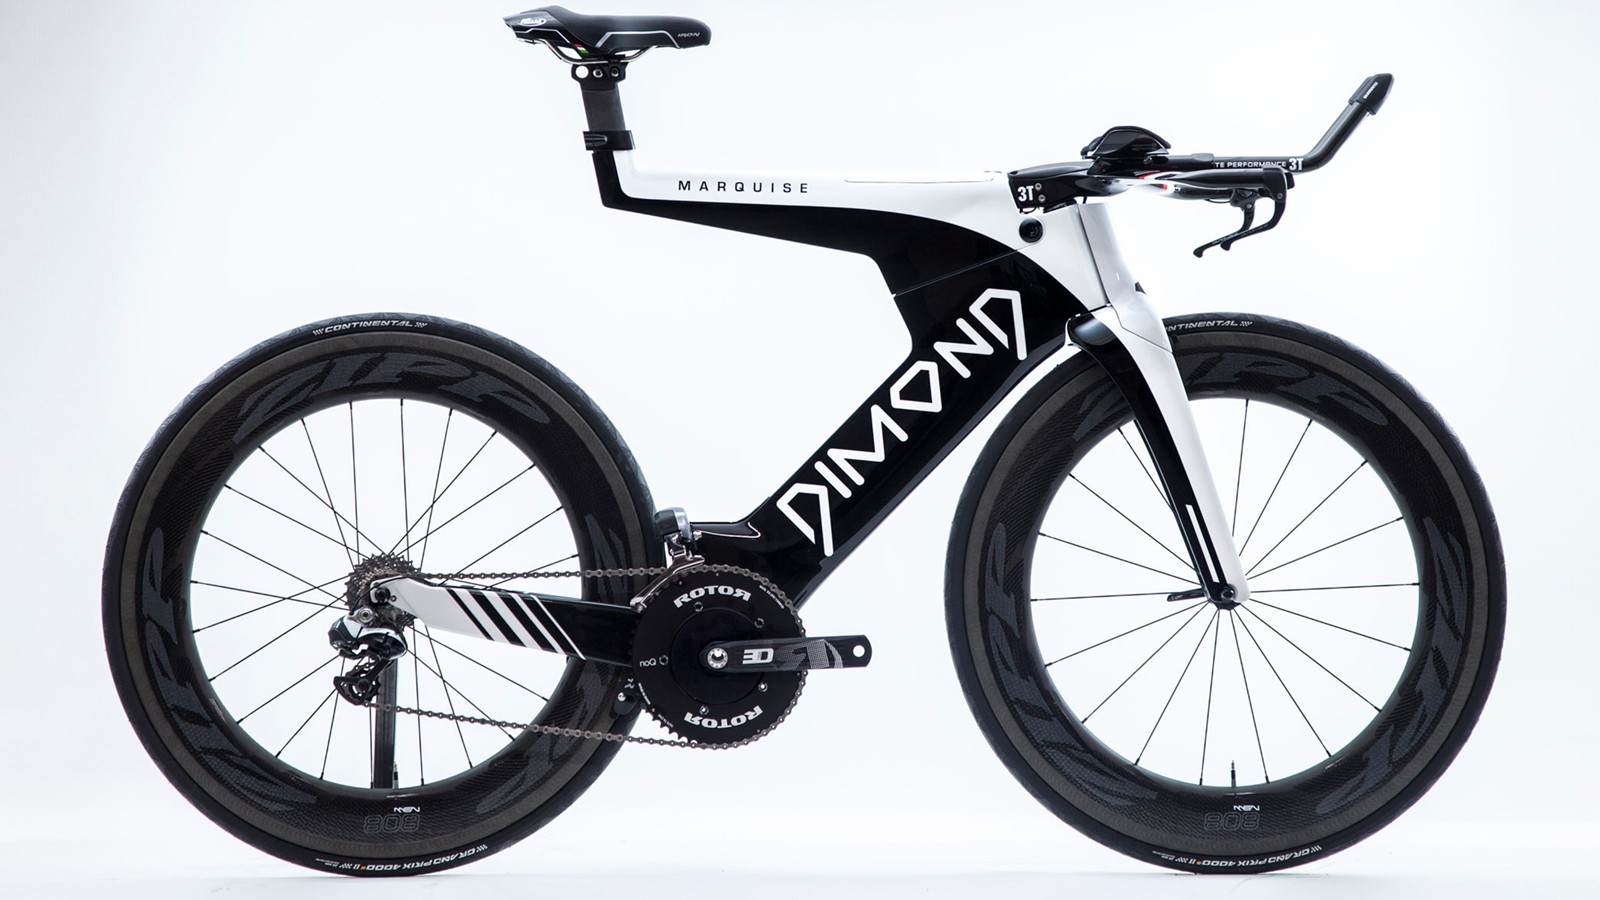 The new Dimond Marquise is an extreme looking, wind cheating, tri machine